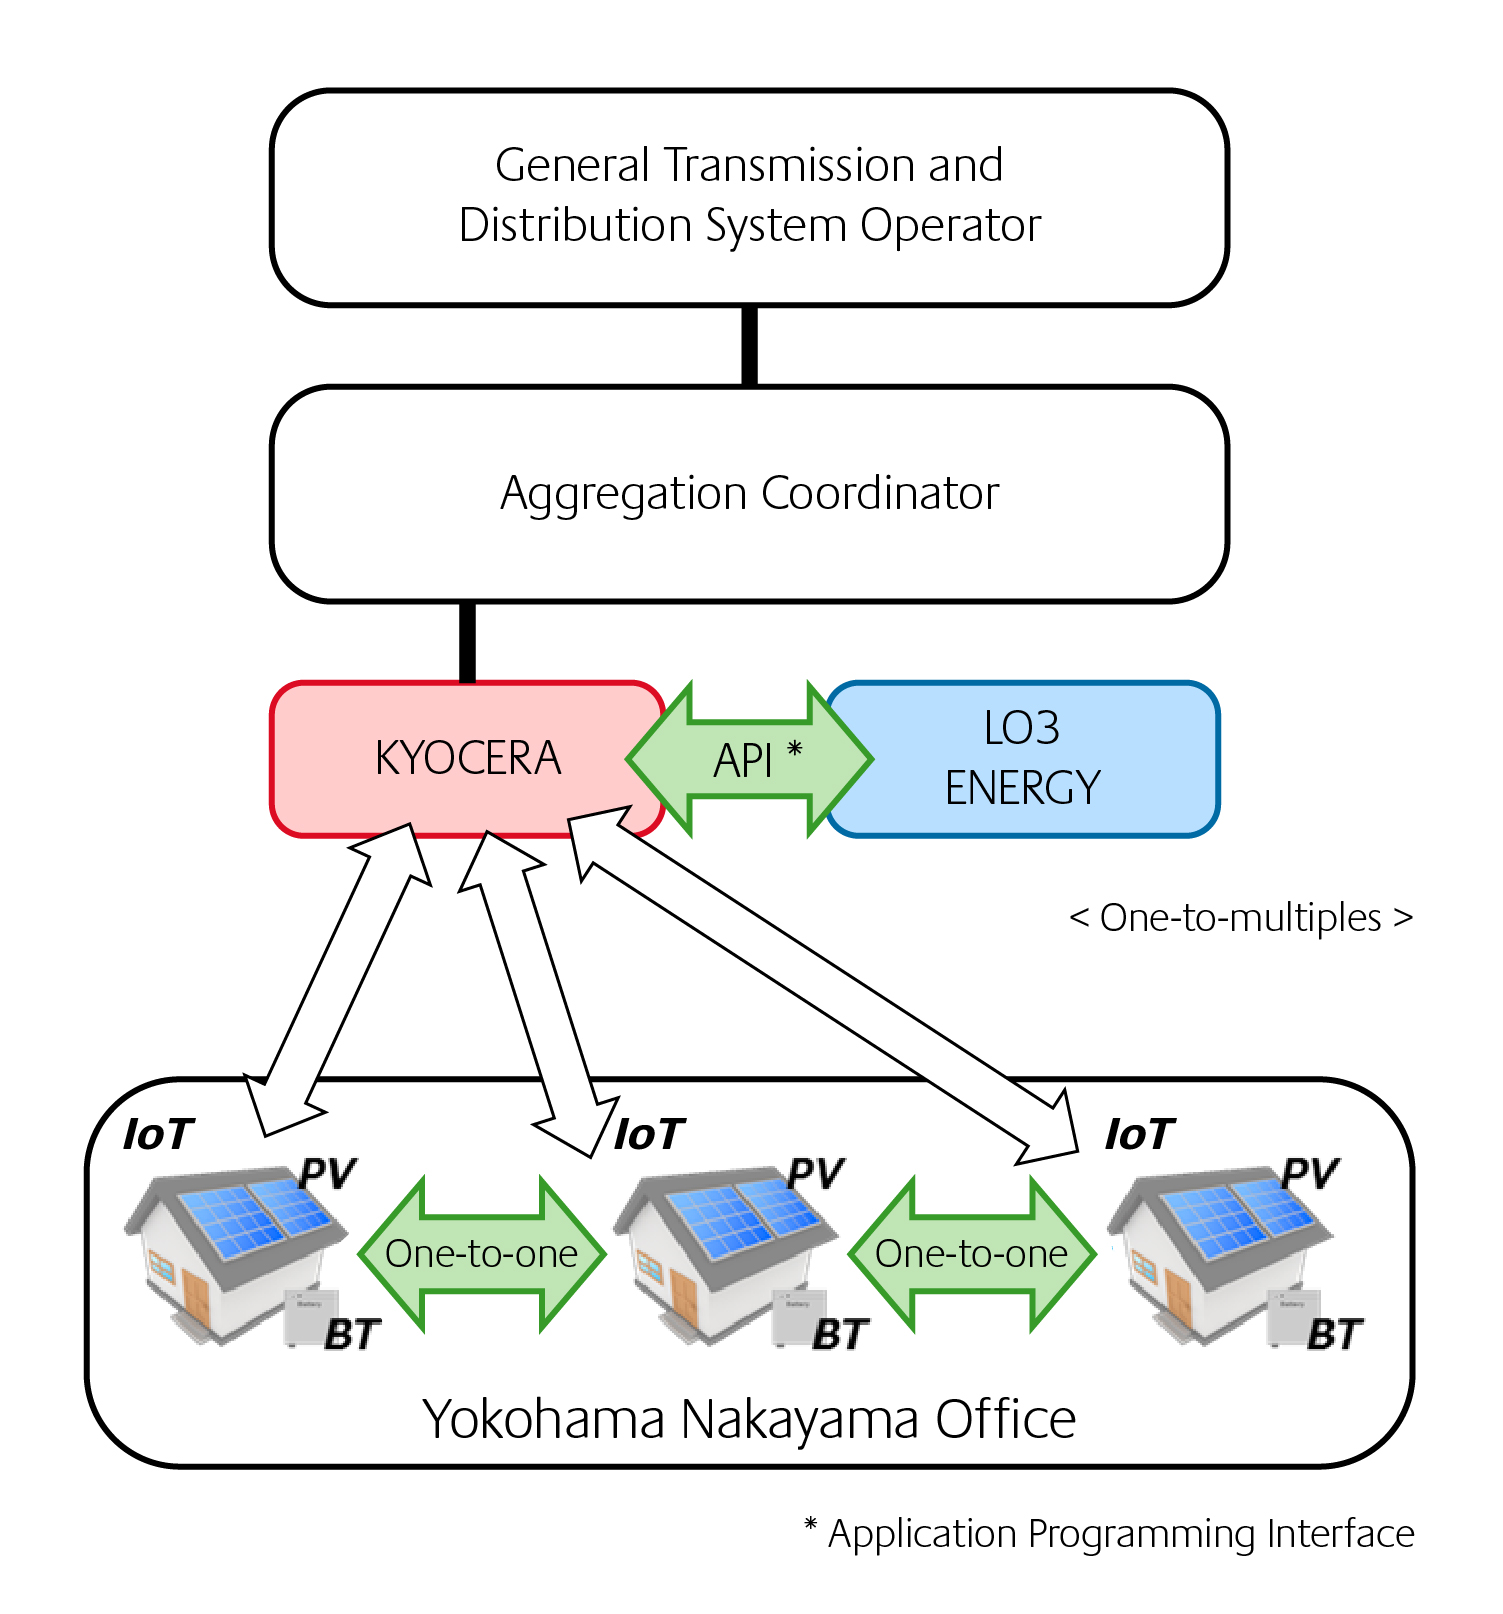 kyocera_and_lo3_energy_to_demonstrate_blockchain-managed_virtual_power_plant.-cps-12267-image.cpsarticle.jpg